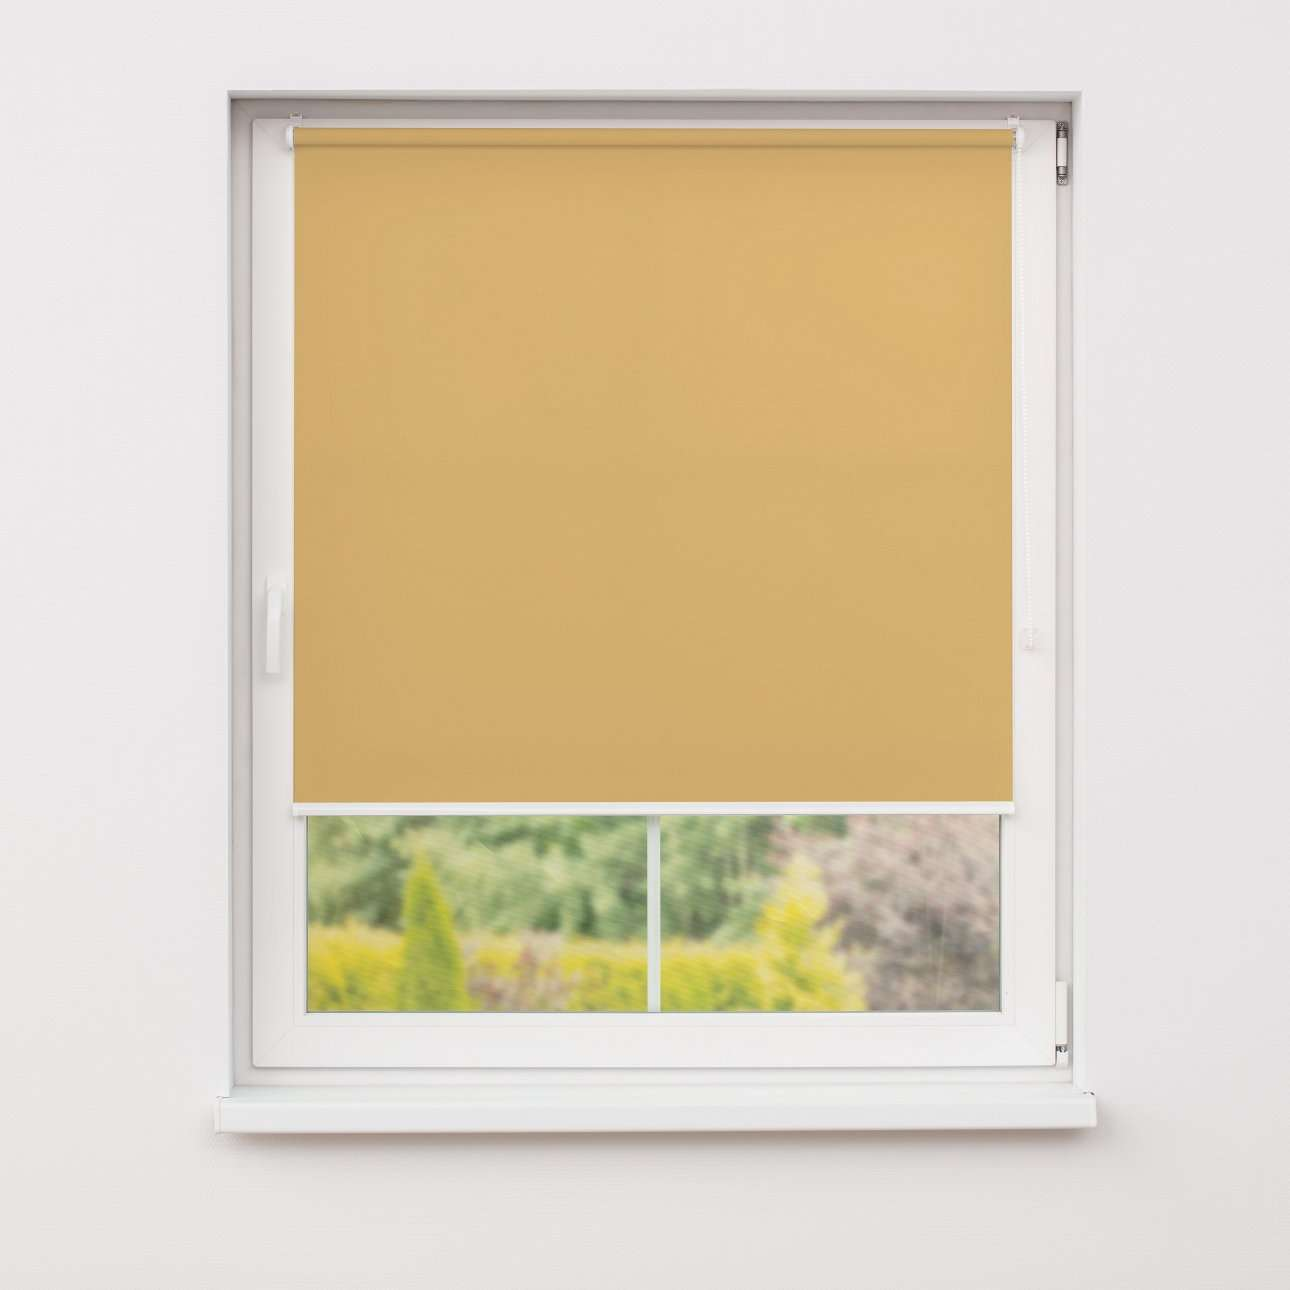 Mini blackout roller blind in collection Roller blind blackout, fabric: 059